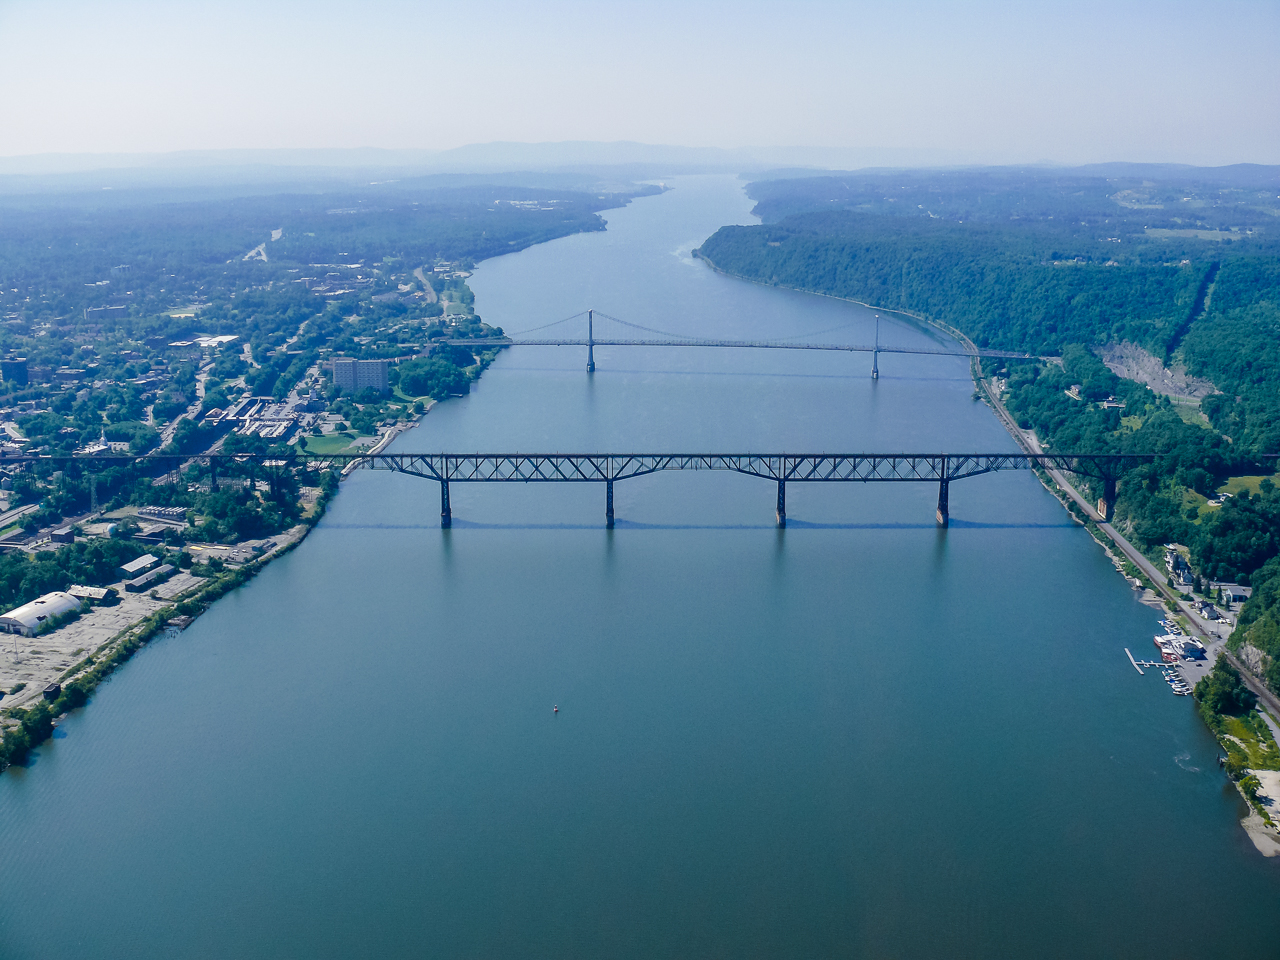 Poughkeepsie Bridges